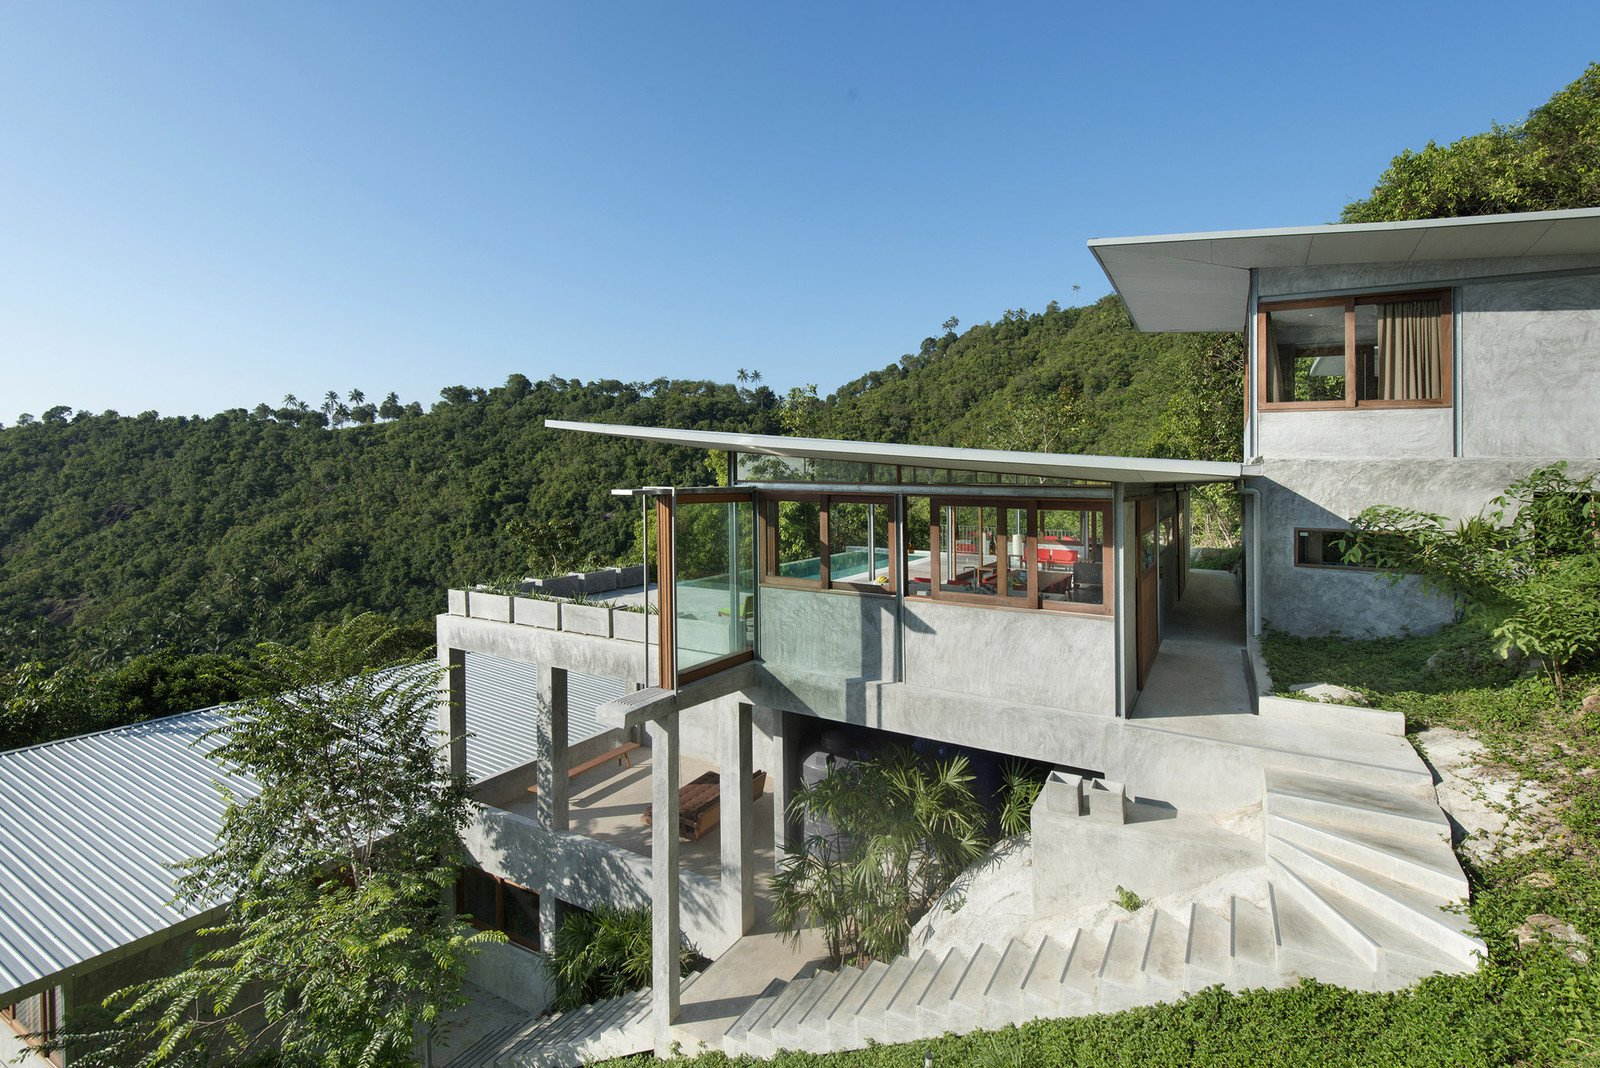 Sofa, Bed, Trees, Metal, Side Yard, Cooktops, Freestanding, Enclosed, One Piece, Outdoor, Slope, Shrubs, Walkways, and Grass  Best Outdoor One Piece Sofa Photos from Take a Trip to This Photographer-Designed Concrete Home in Thailand